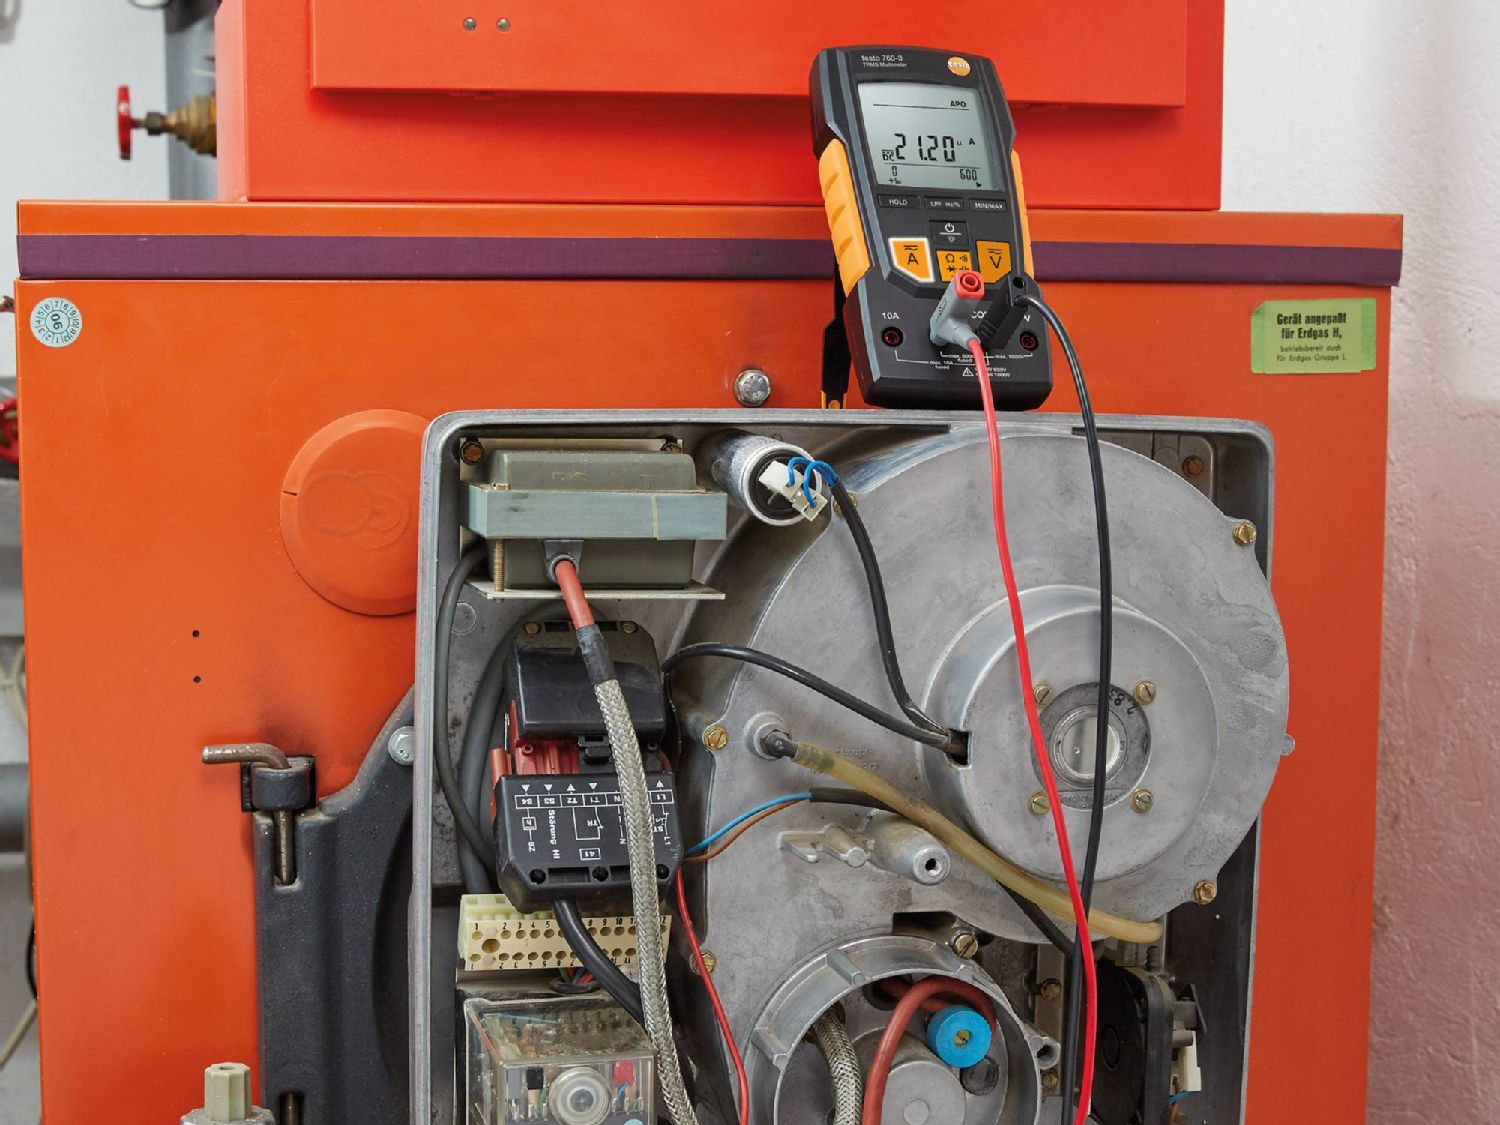 Electrical measurement at heating systems with multimeters